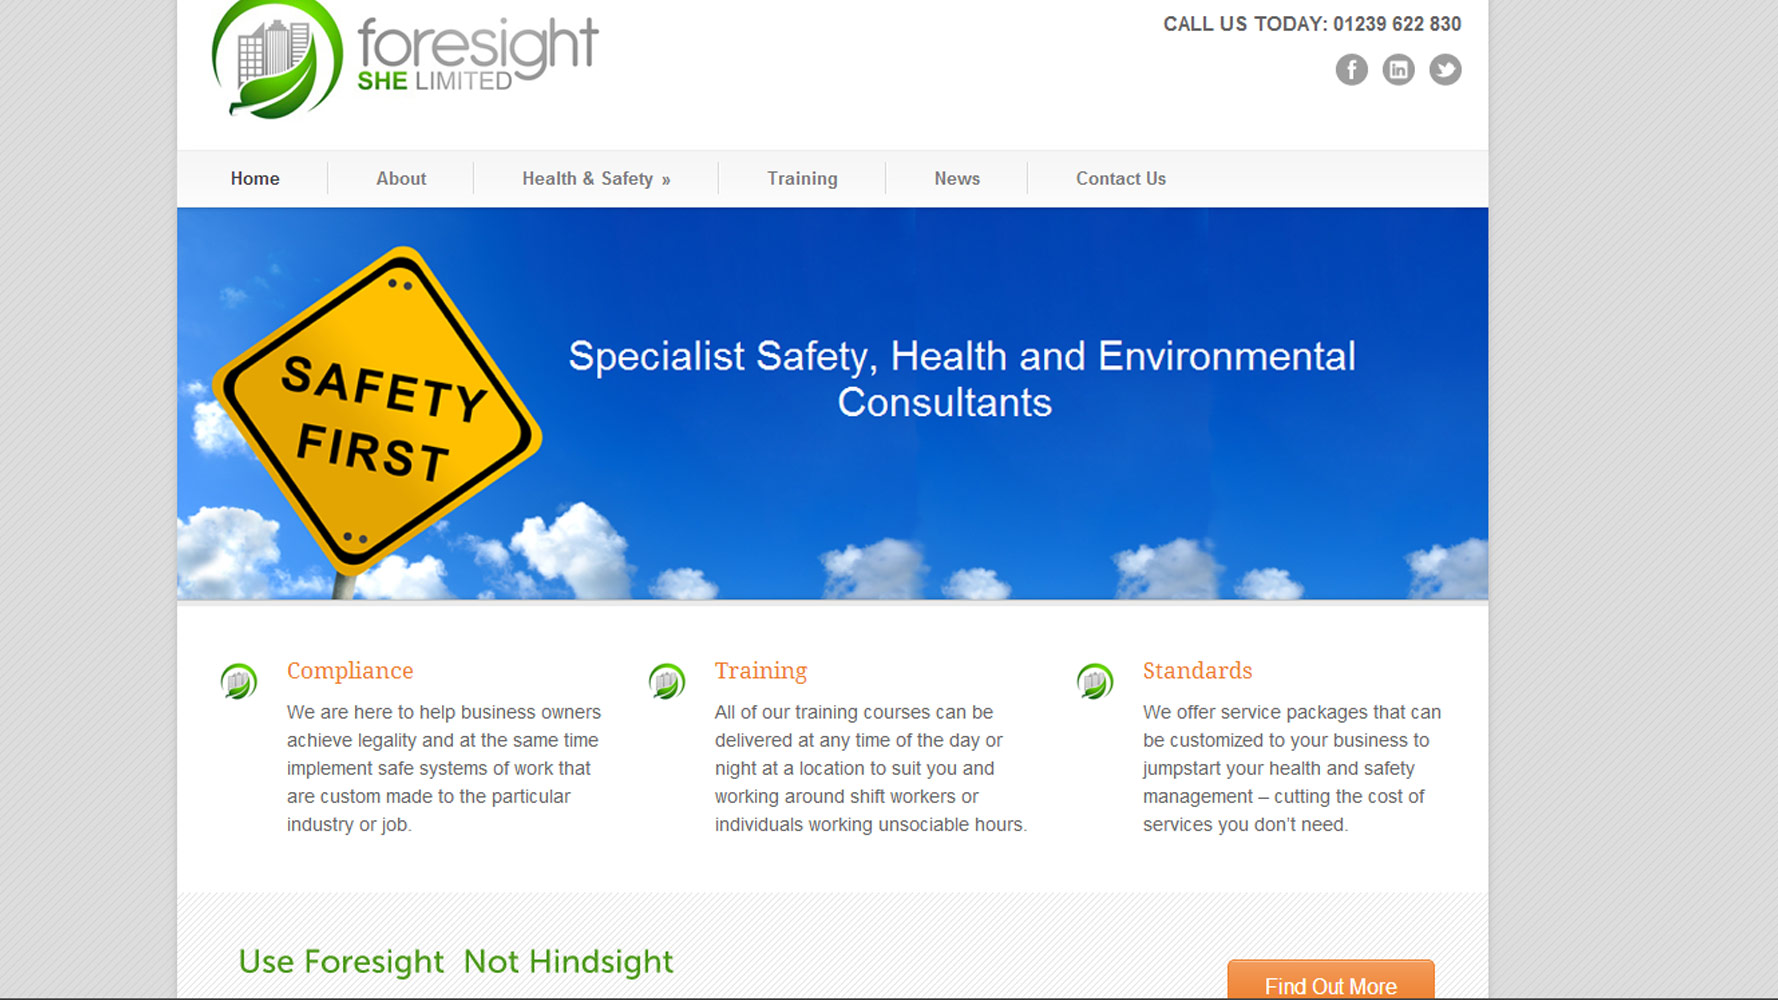 Foresight SHE Web Design by Web Adept